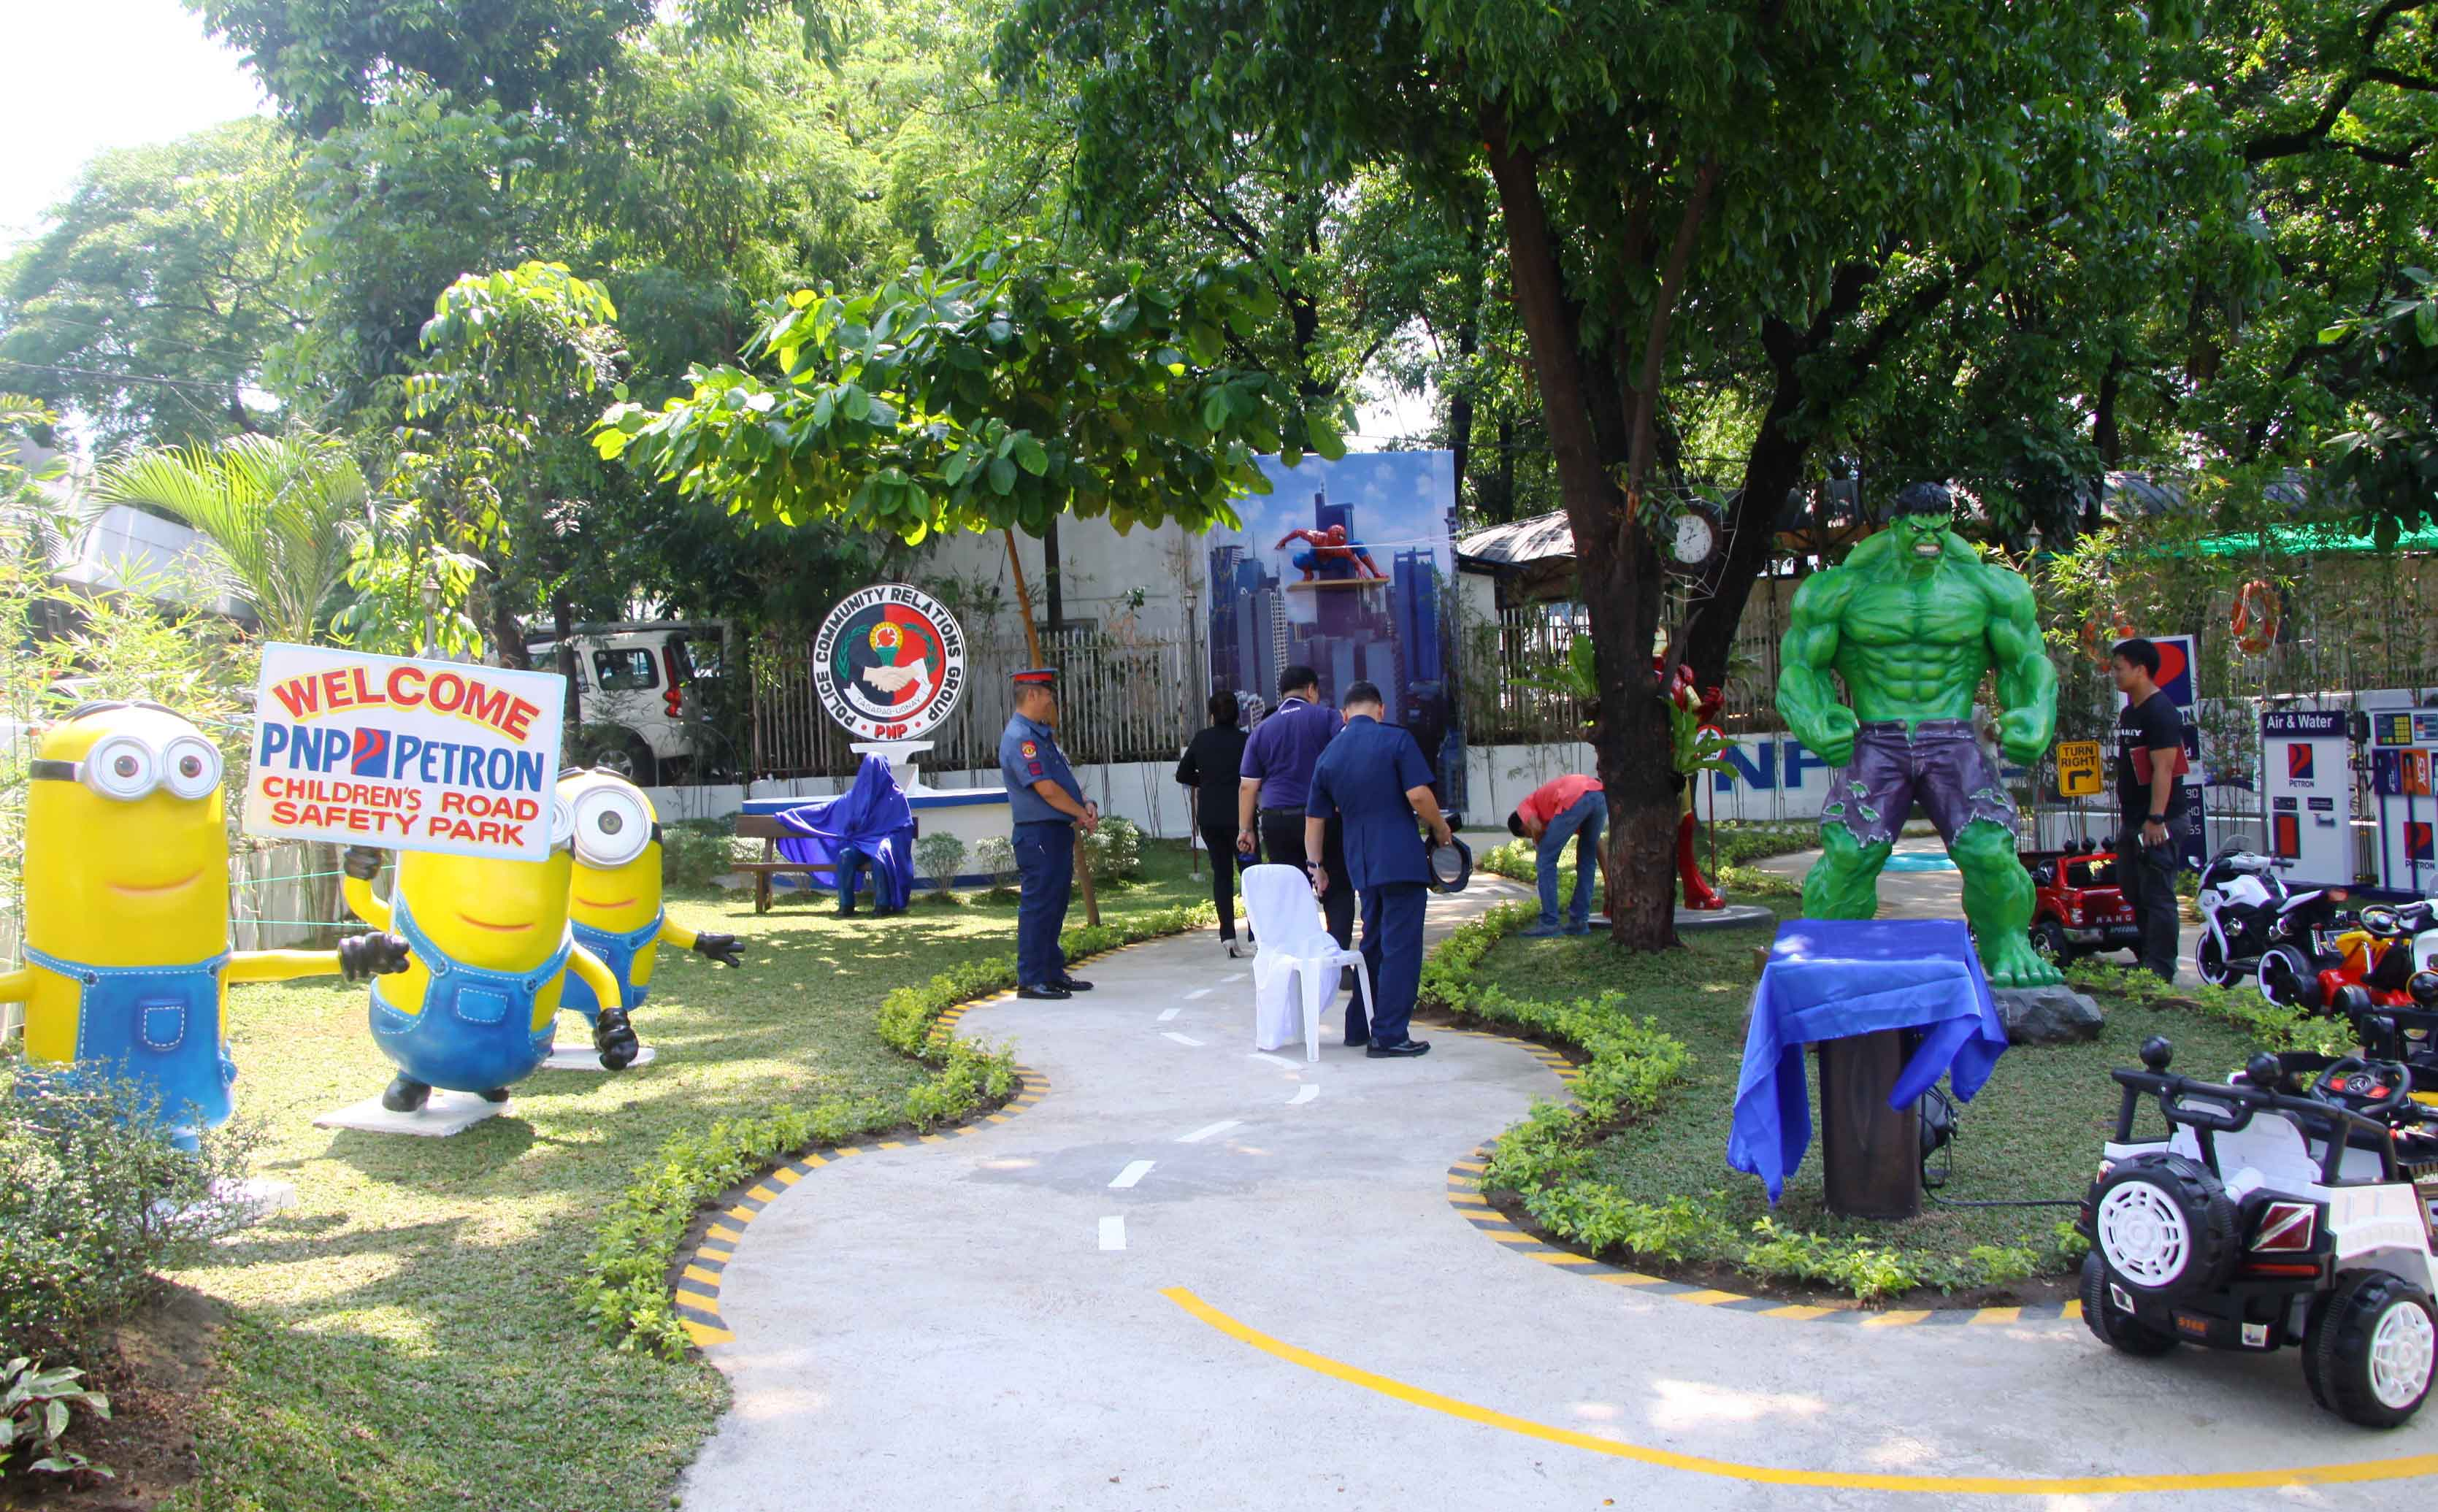 Petron, PNP Open Road Safety Park for kids in Camp Crame